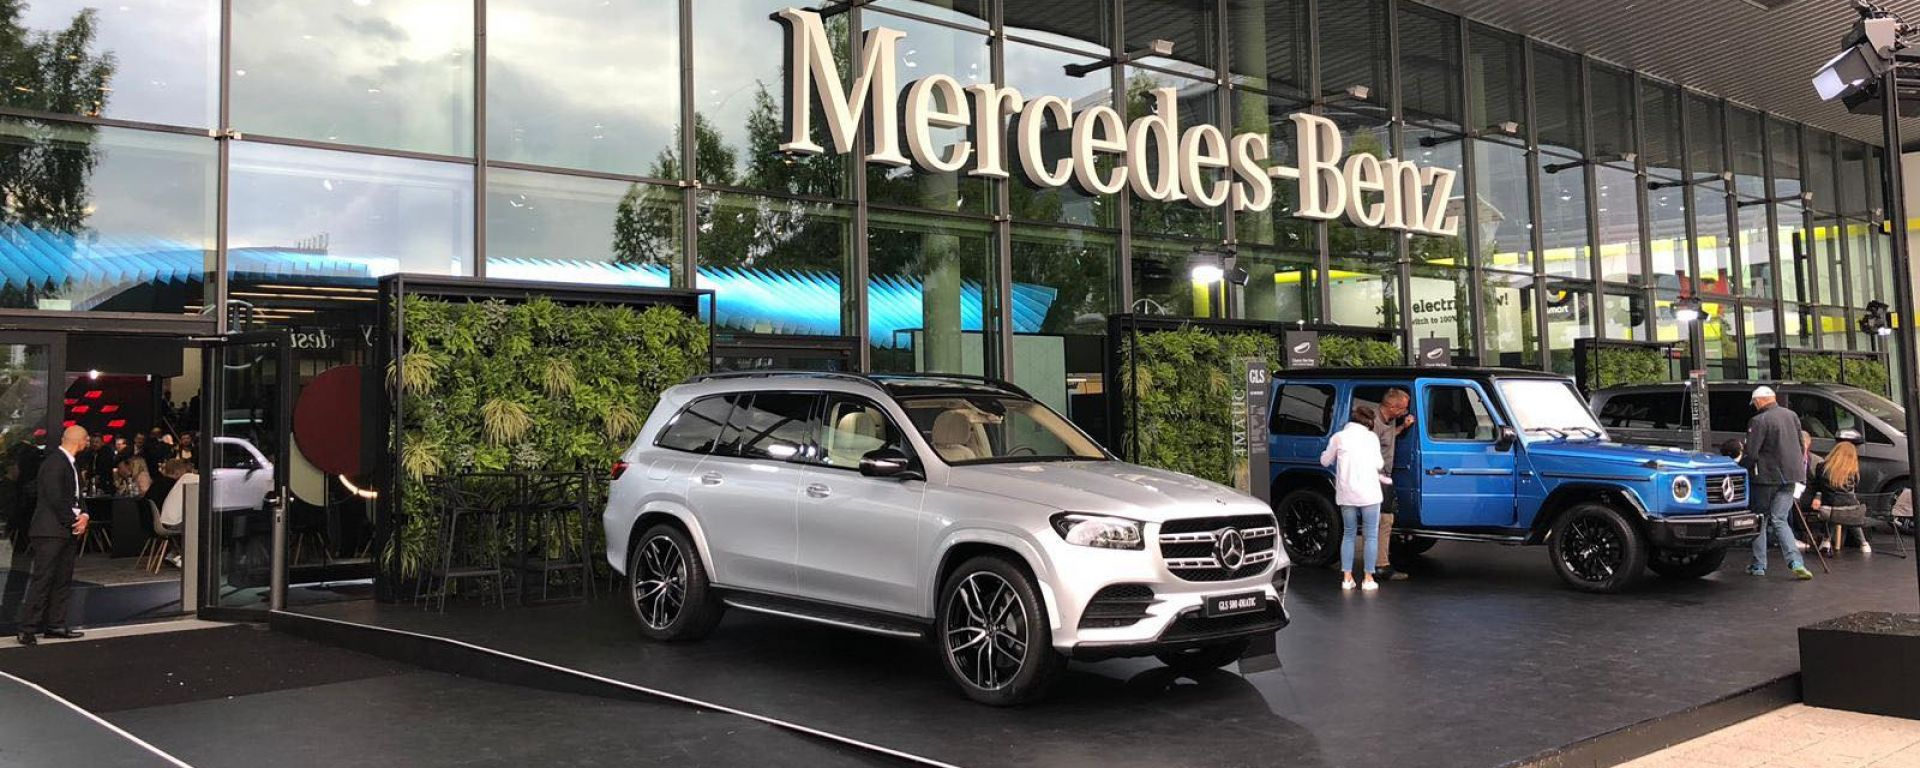 Lo stand Mercedes